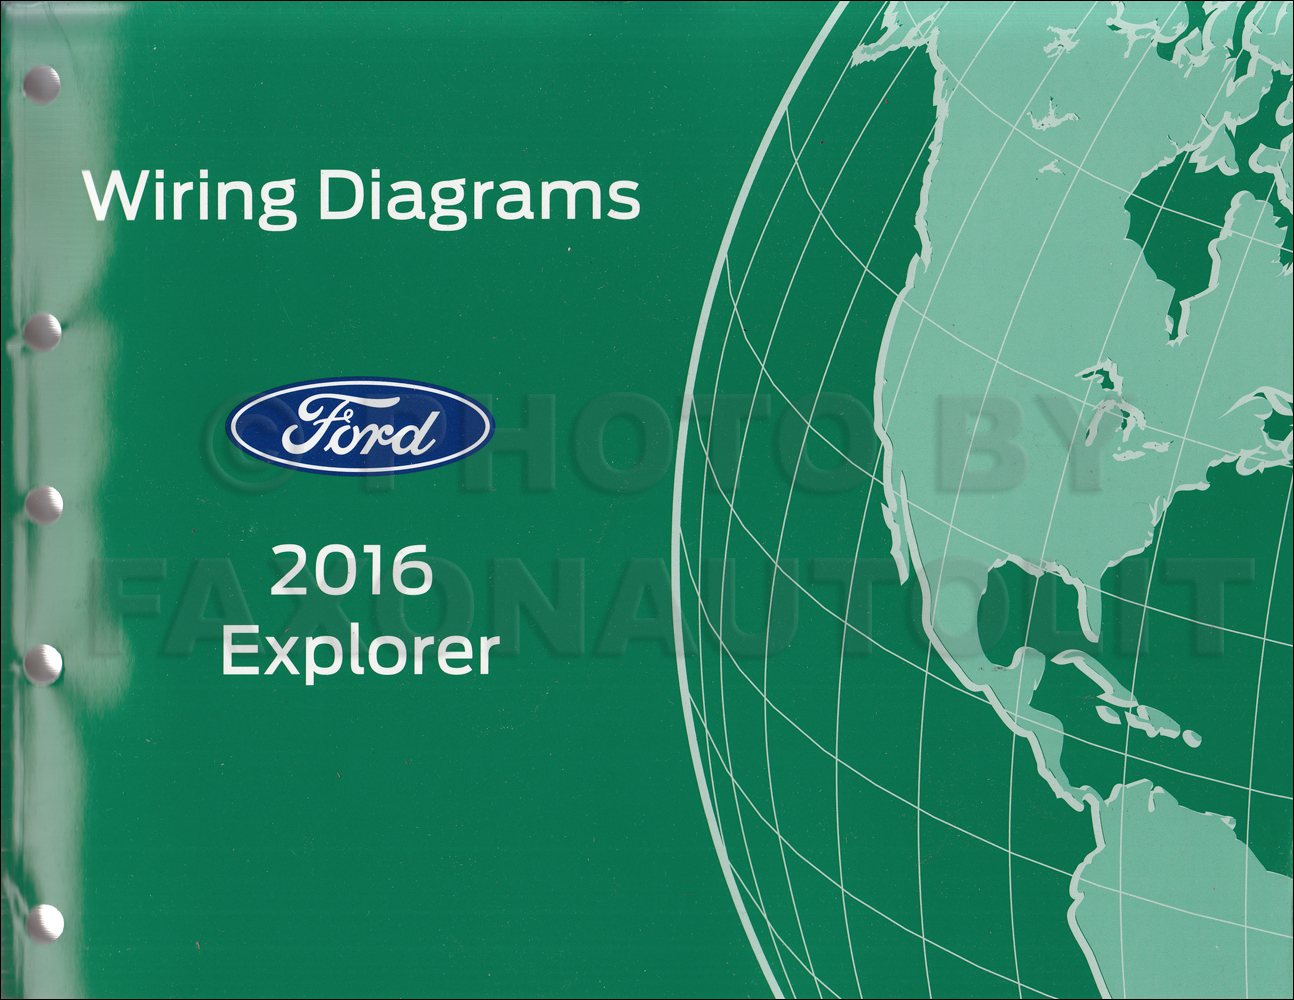 2016FordExplorerOWD 2016 ford explorer wiring diagram manual original 2016 ford explorer wiring diagram at aneh.co